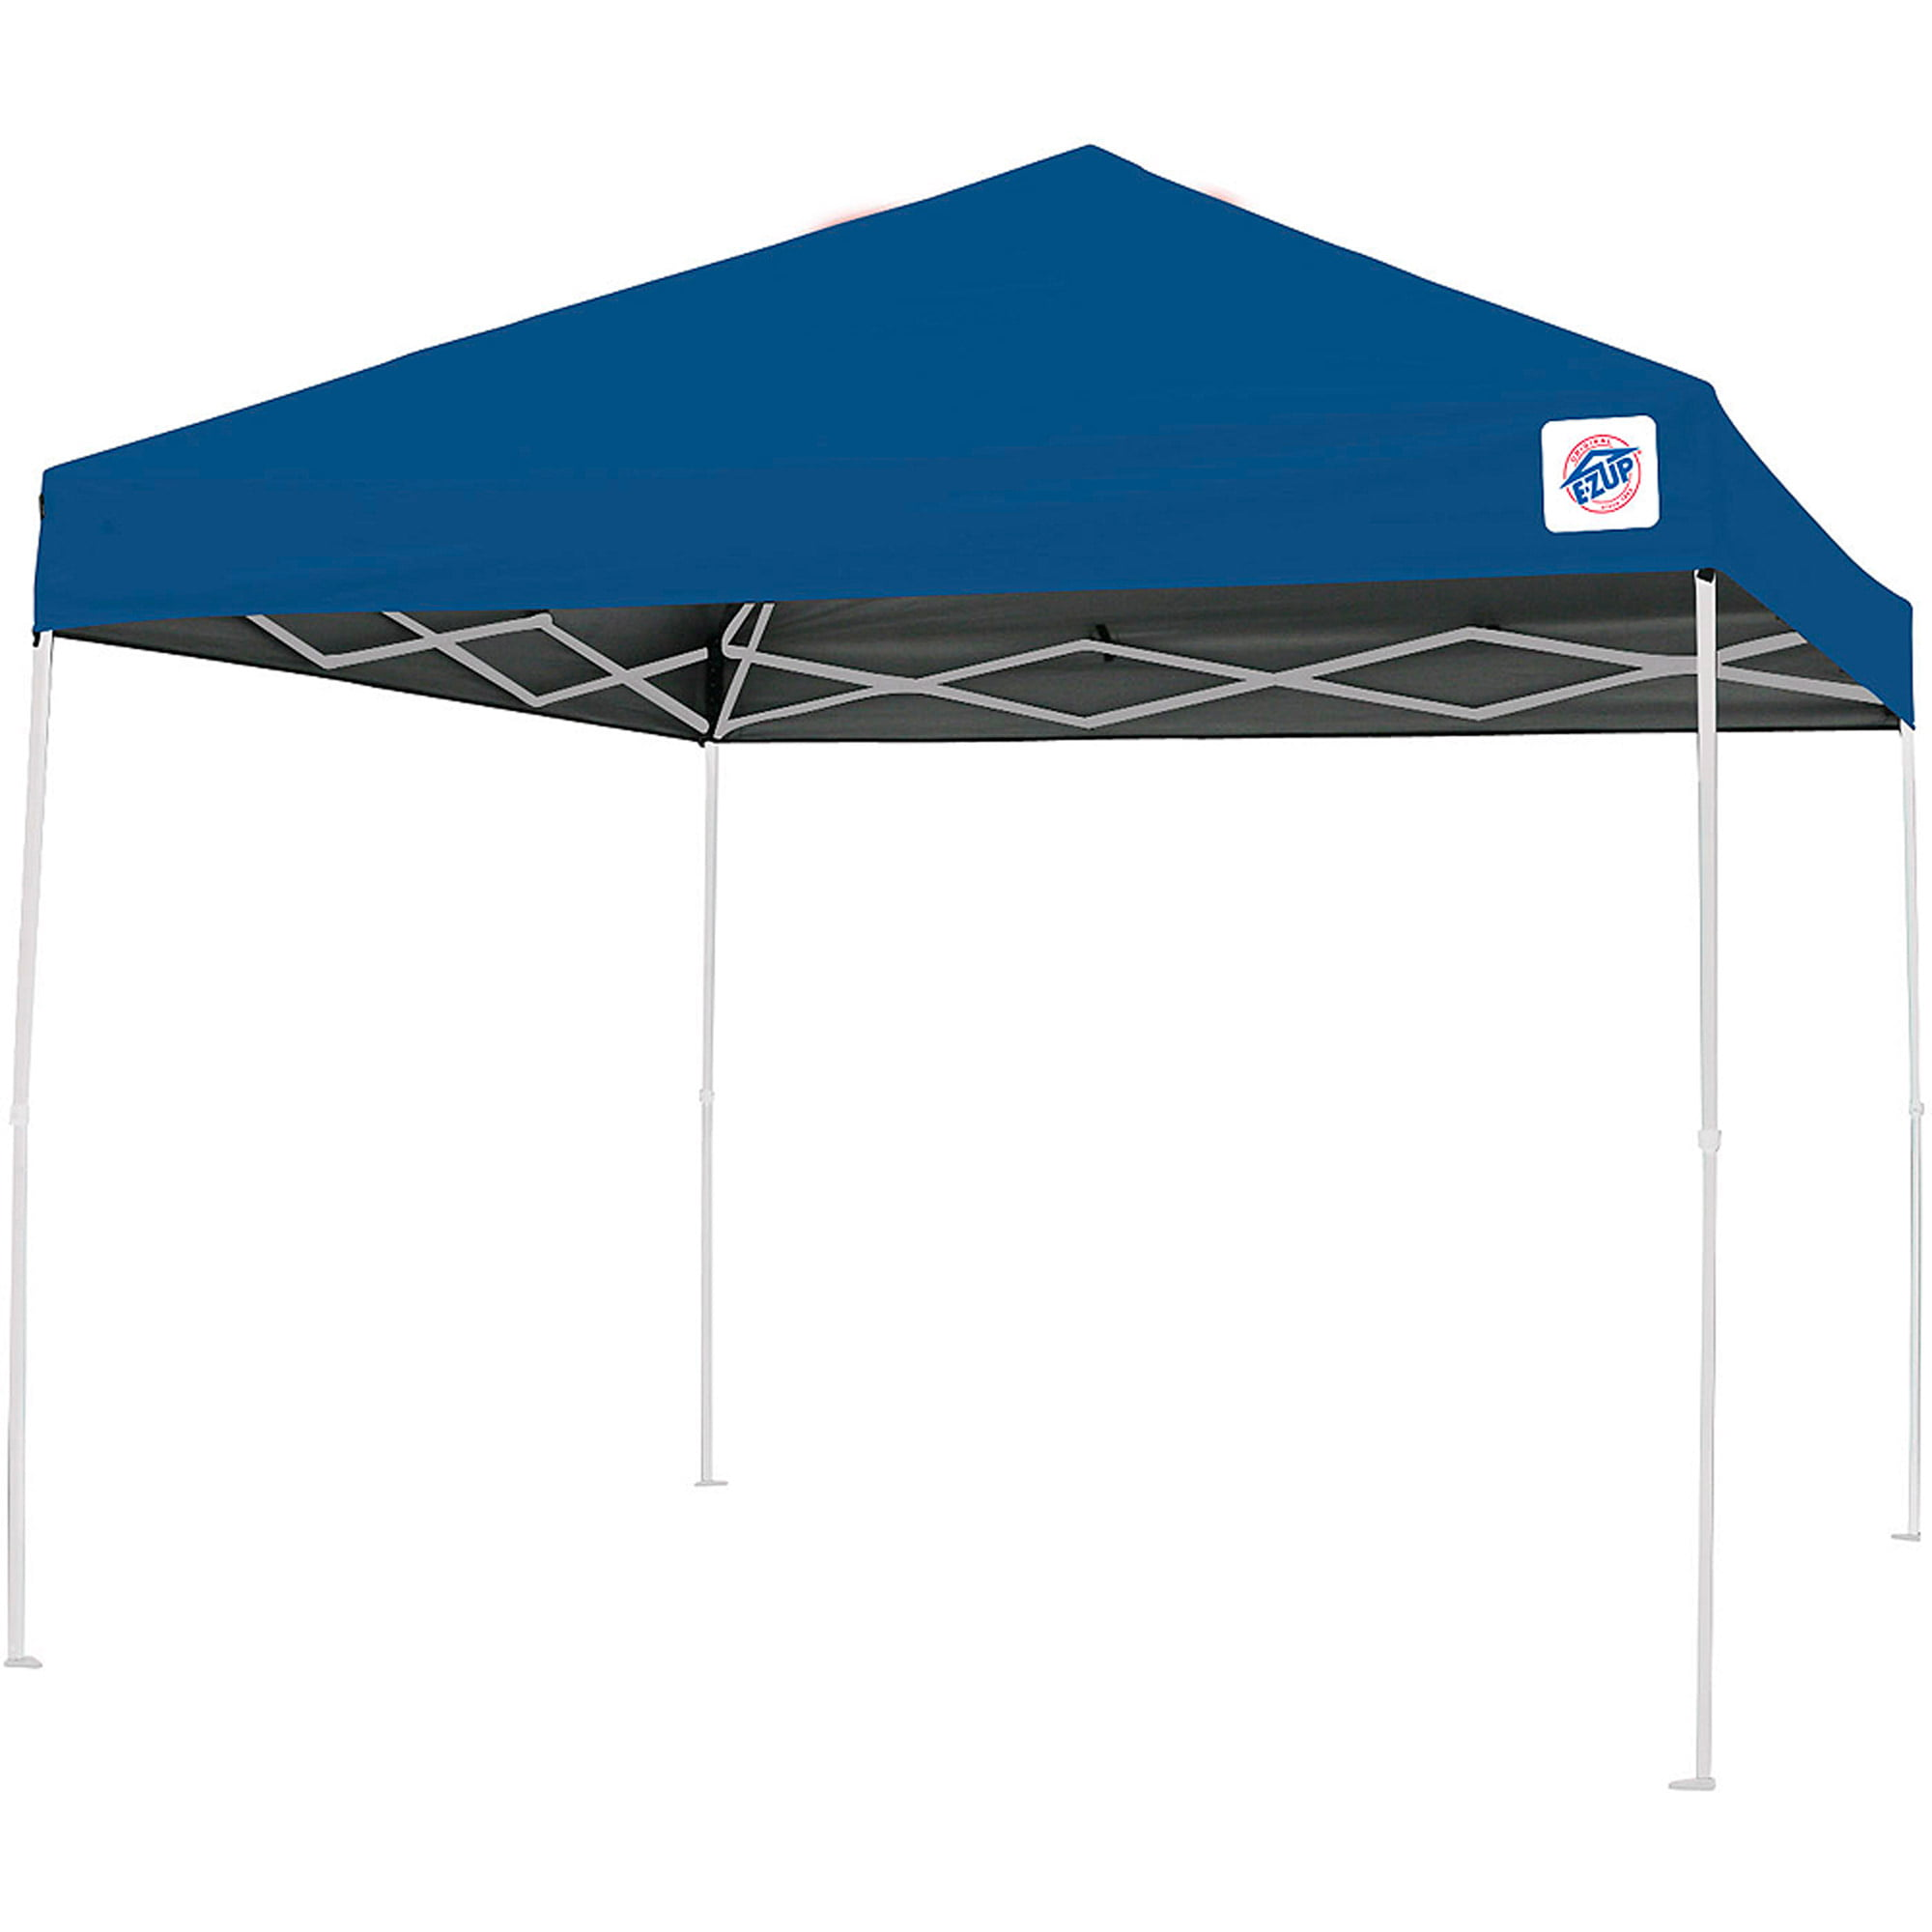 E-Z Up Envoy 10u0027x10u0027 Straight Leg Instant Canopy (100 sq. ft. coverage) - Walmart.com  sc 1 st  Walmart & E-Z Up Envoy 10u0027x10u0027 Straight Leg Instant Canopy (100 sq. ft ...